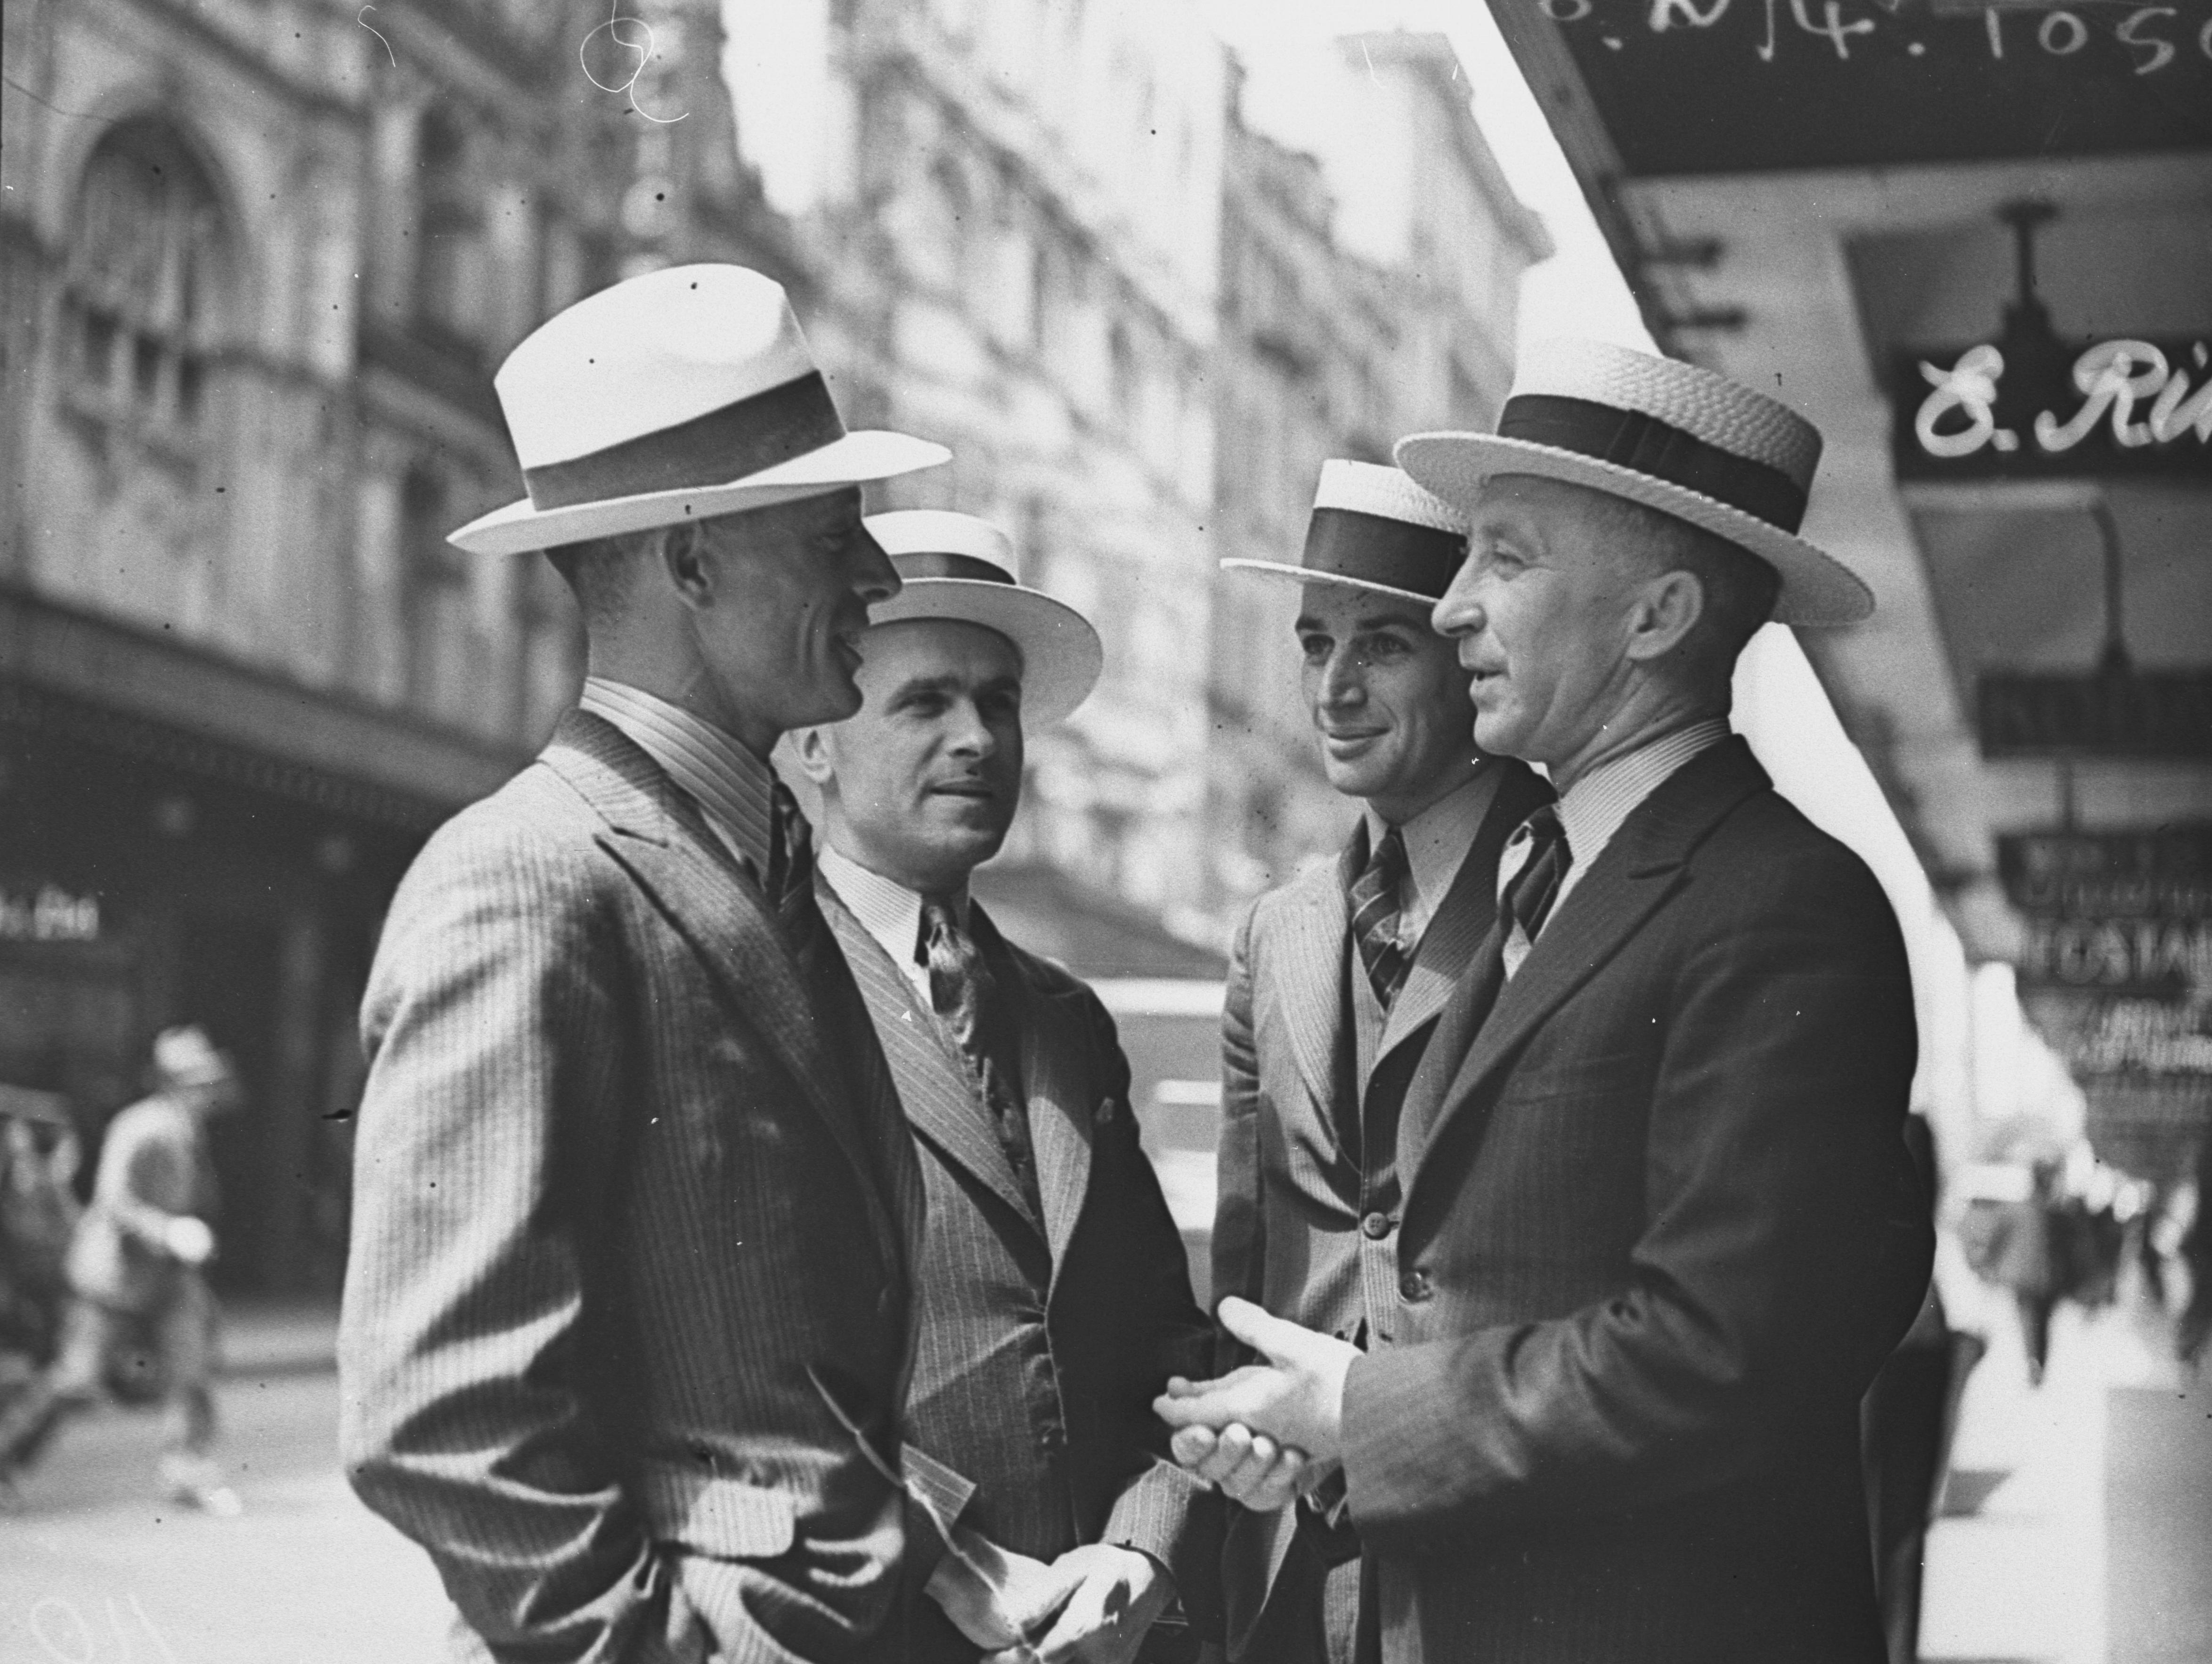 Four men modelling hats in Pitt Street